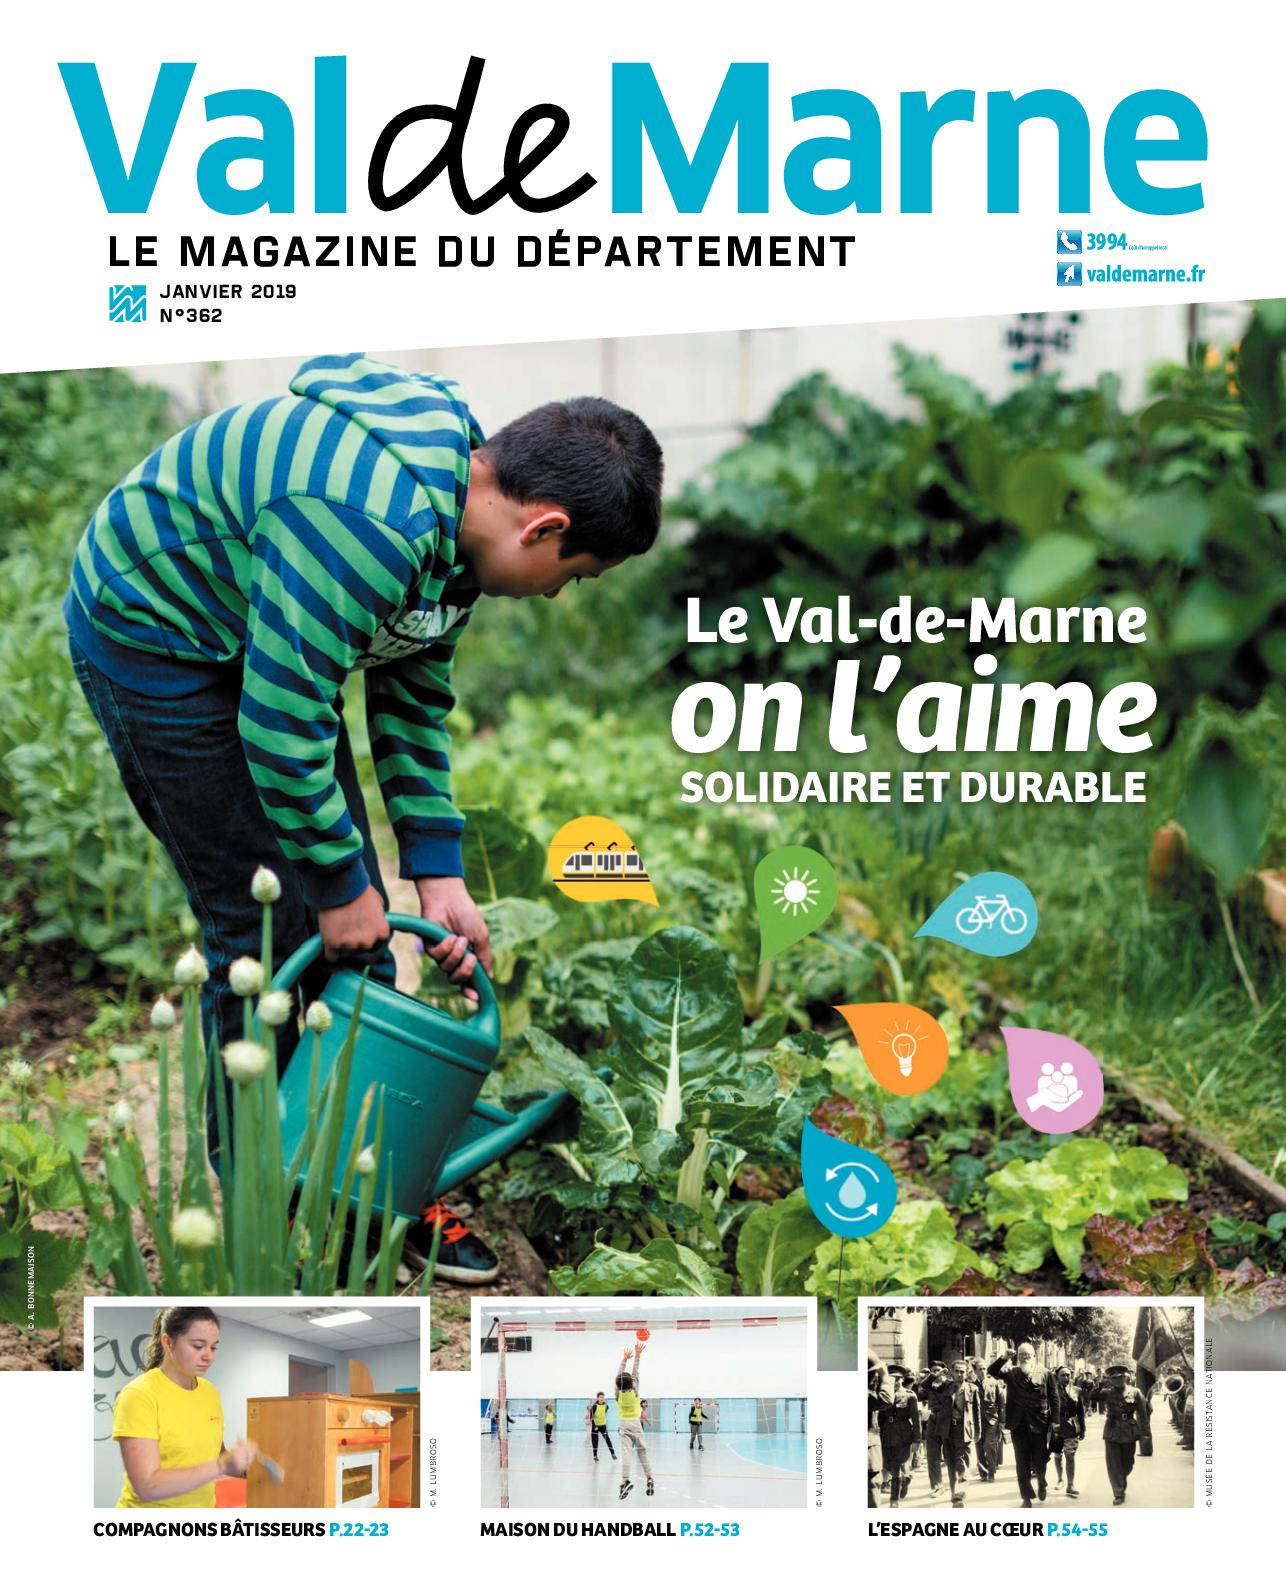 homme poilu gay champigny sur marne